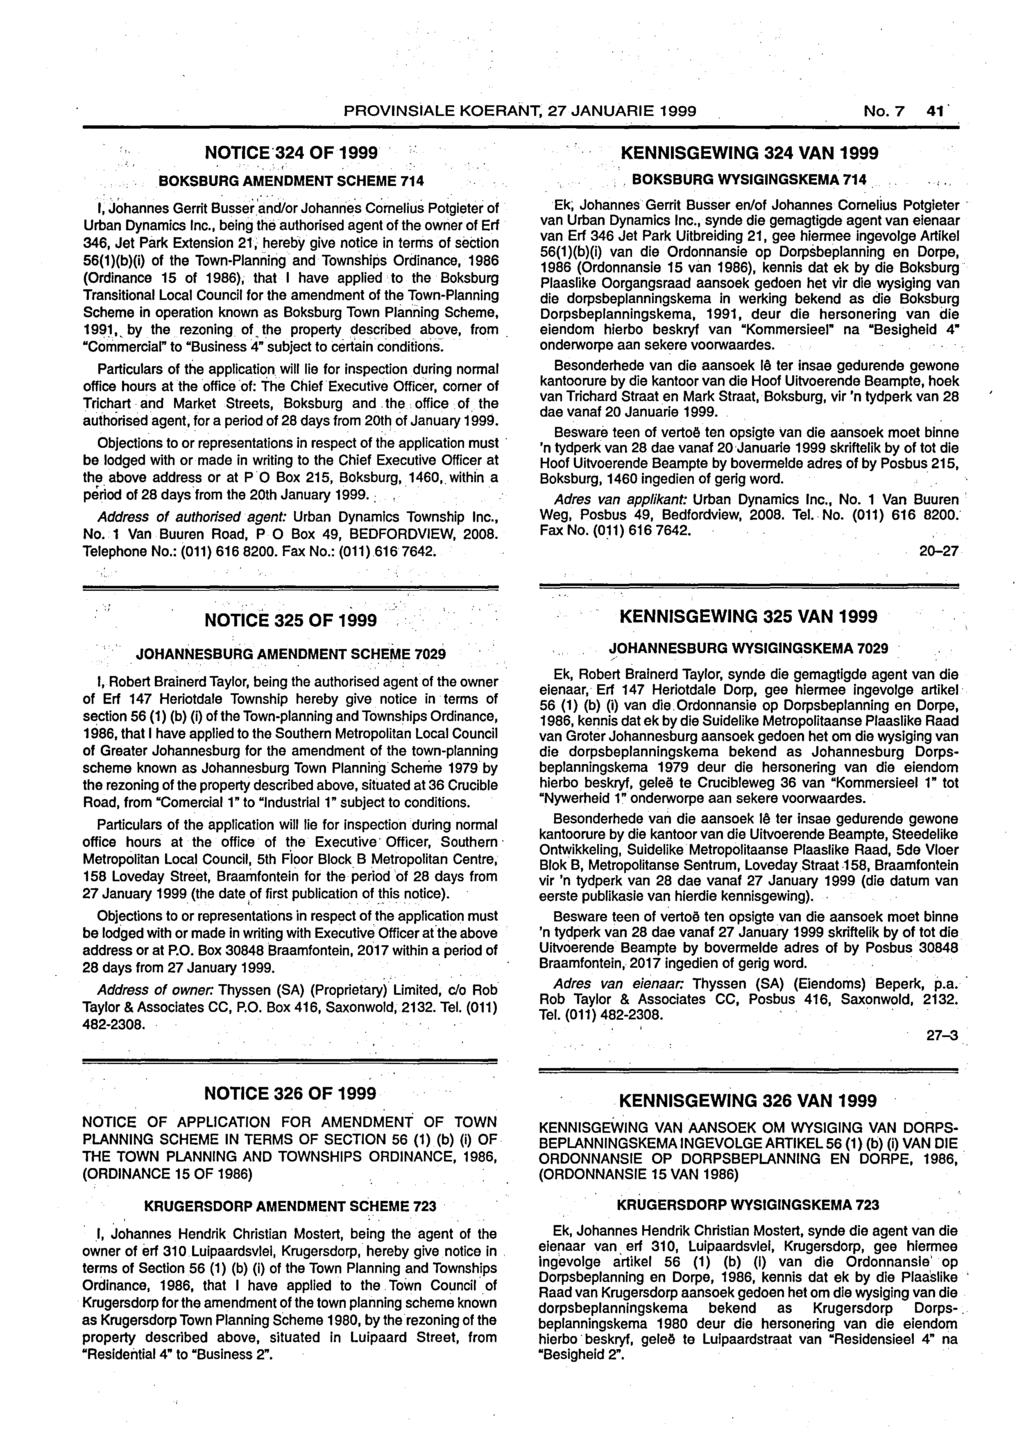 PROVINSIALE KOERANT, 27 JANUARIE 1999 No.7 41' NOTICE '324 OF 1999 BOKSBURG AMENDMENT SCHEME 714 I, Johannes Gerrit Busser.'and/or Johannes Cornelius Potgieter of Urban Dynamics Inc.